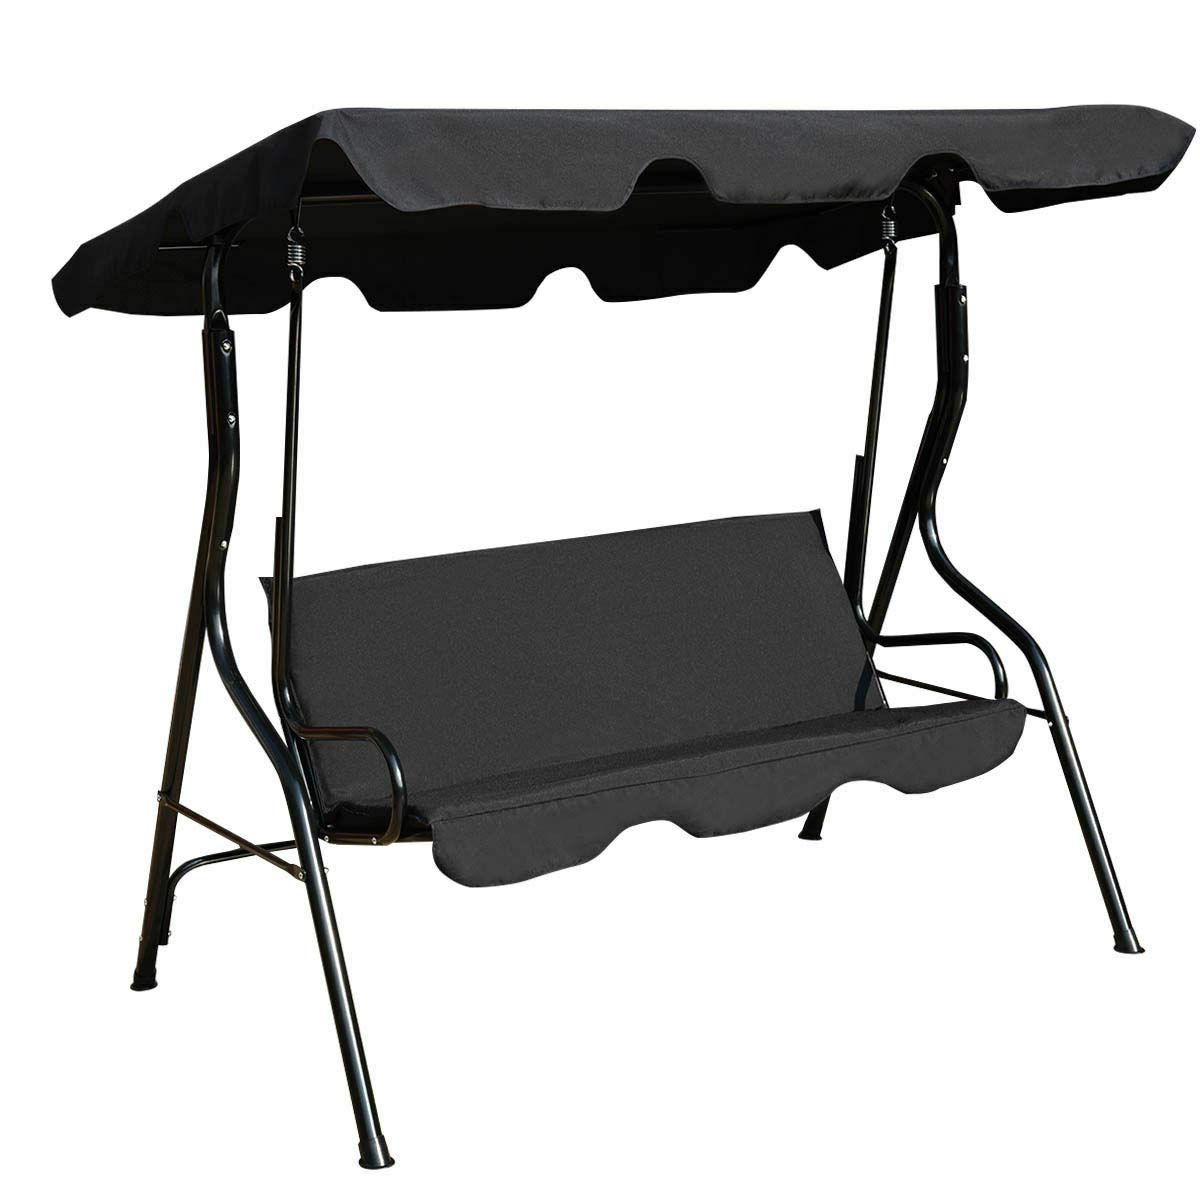 Widely Used 3 Seats Patio Canopy Swing Gliders Hammock Cushioned Steel Frame Throughout Amazon : Nanapluz Black 3 Seats Steel Frame Backyard (View 30 of 30)